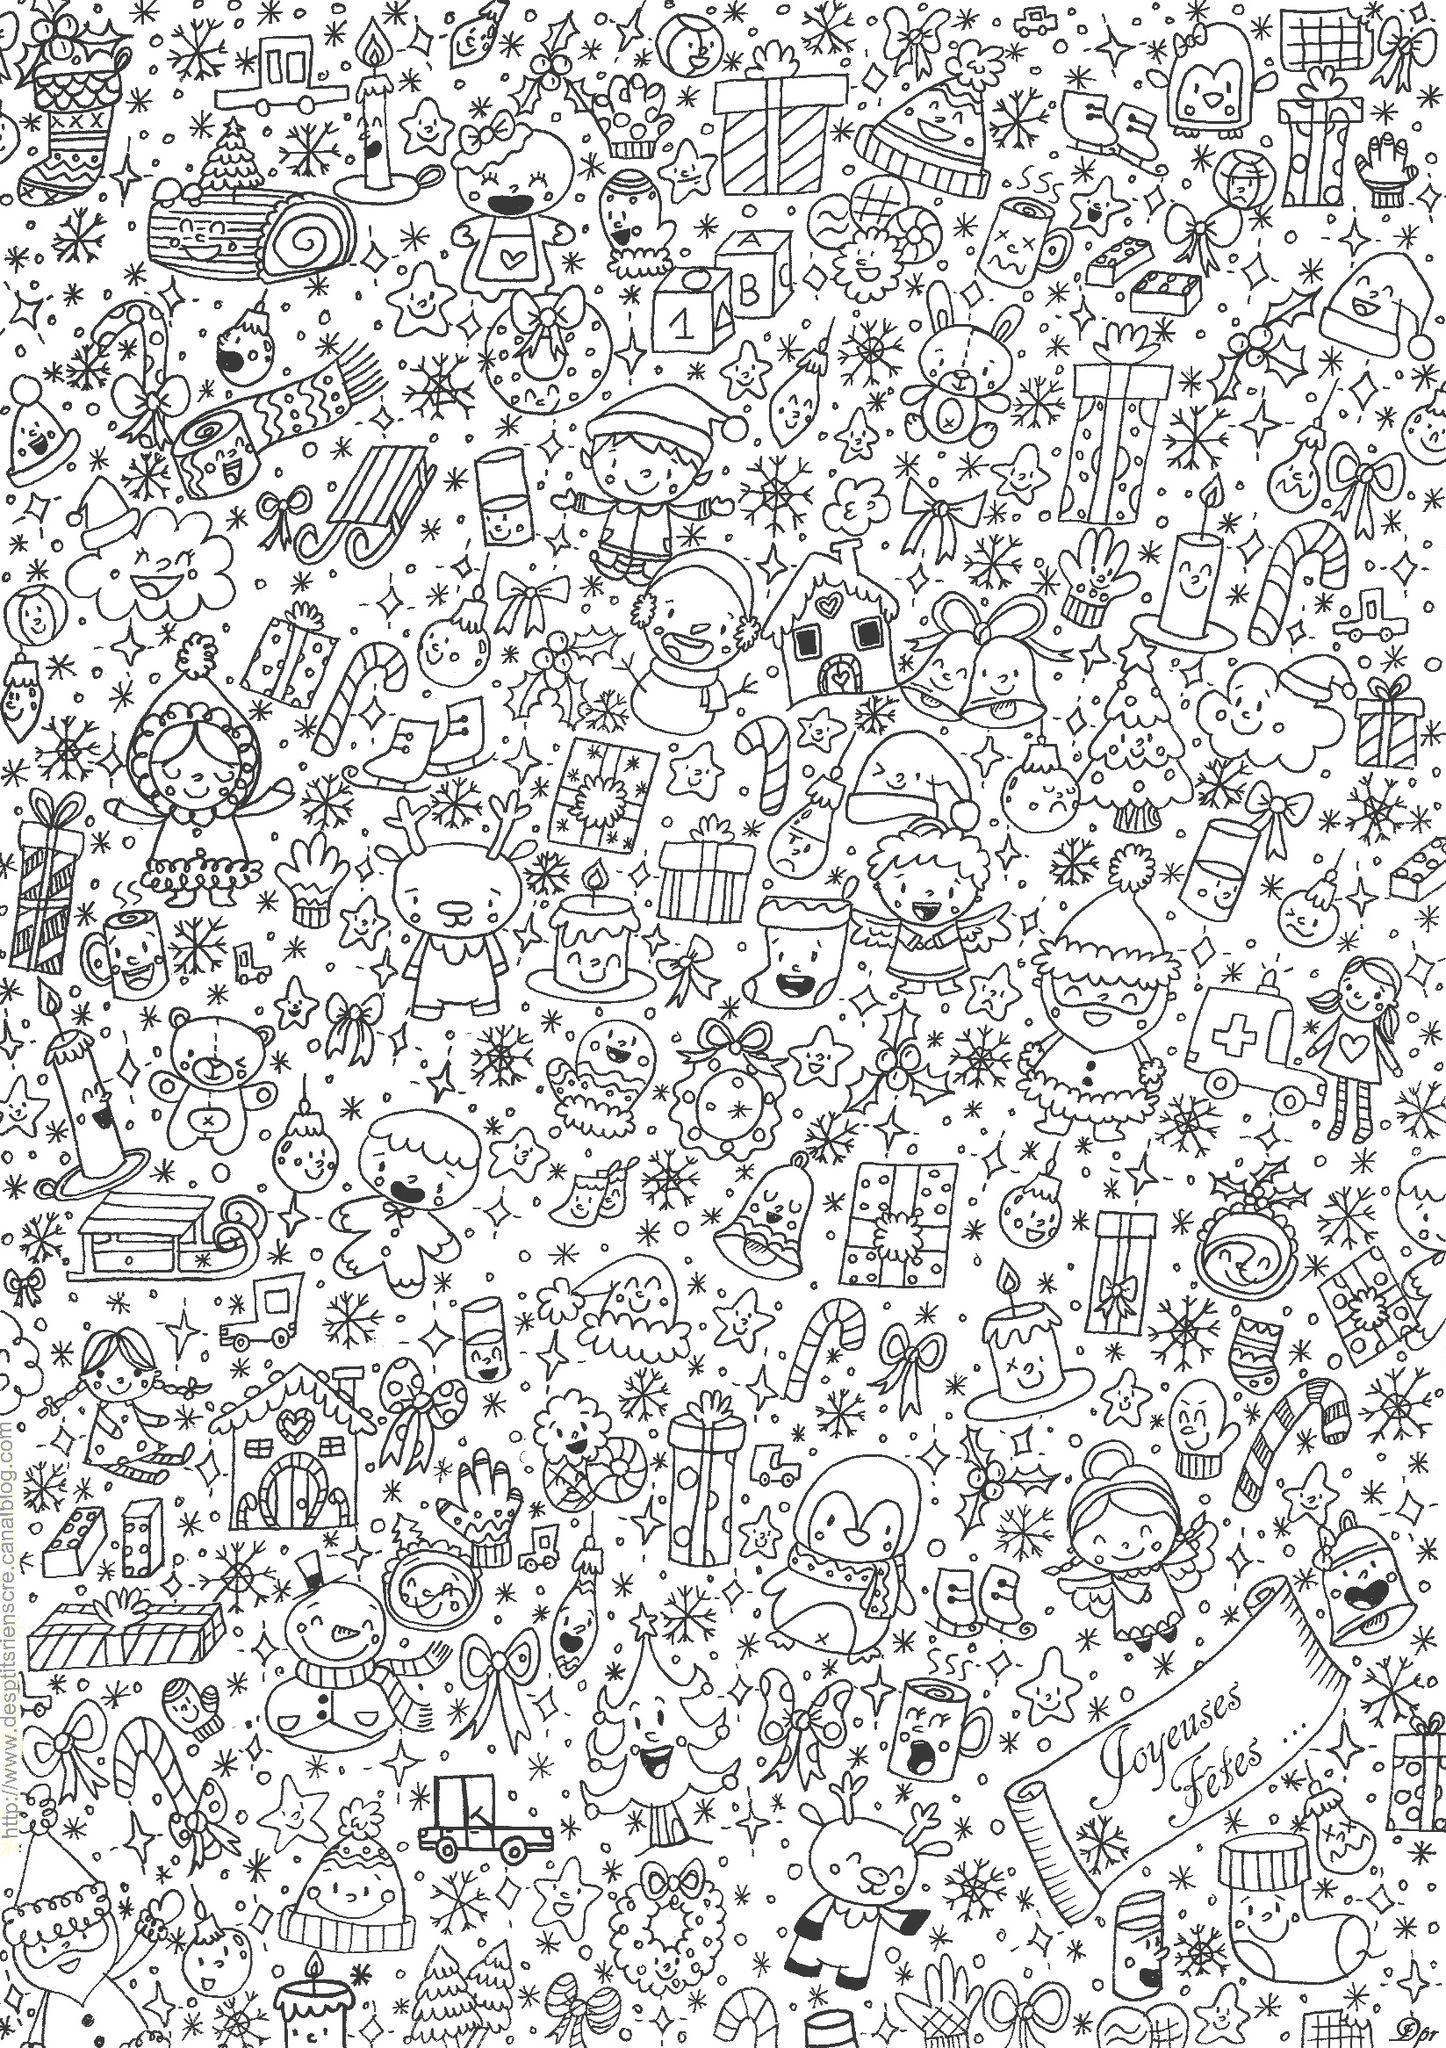 coloring pencils and markers free coloring page download from prismacolor there are pencils and markers coloring